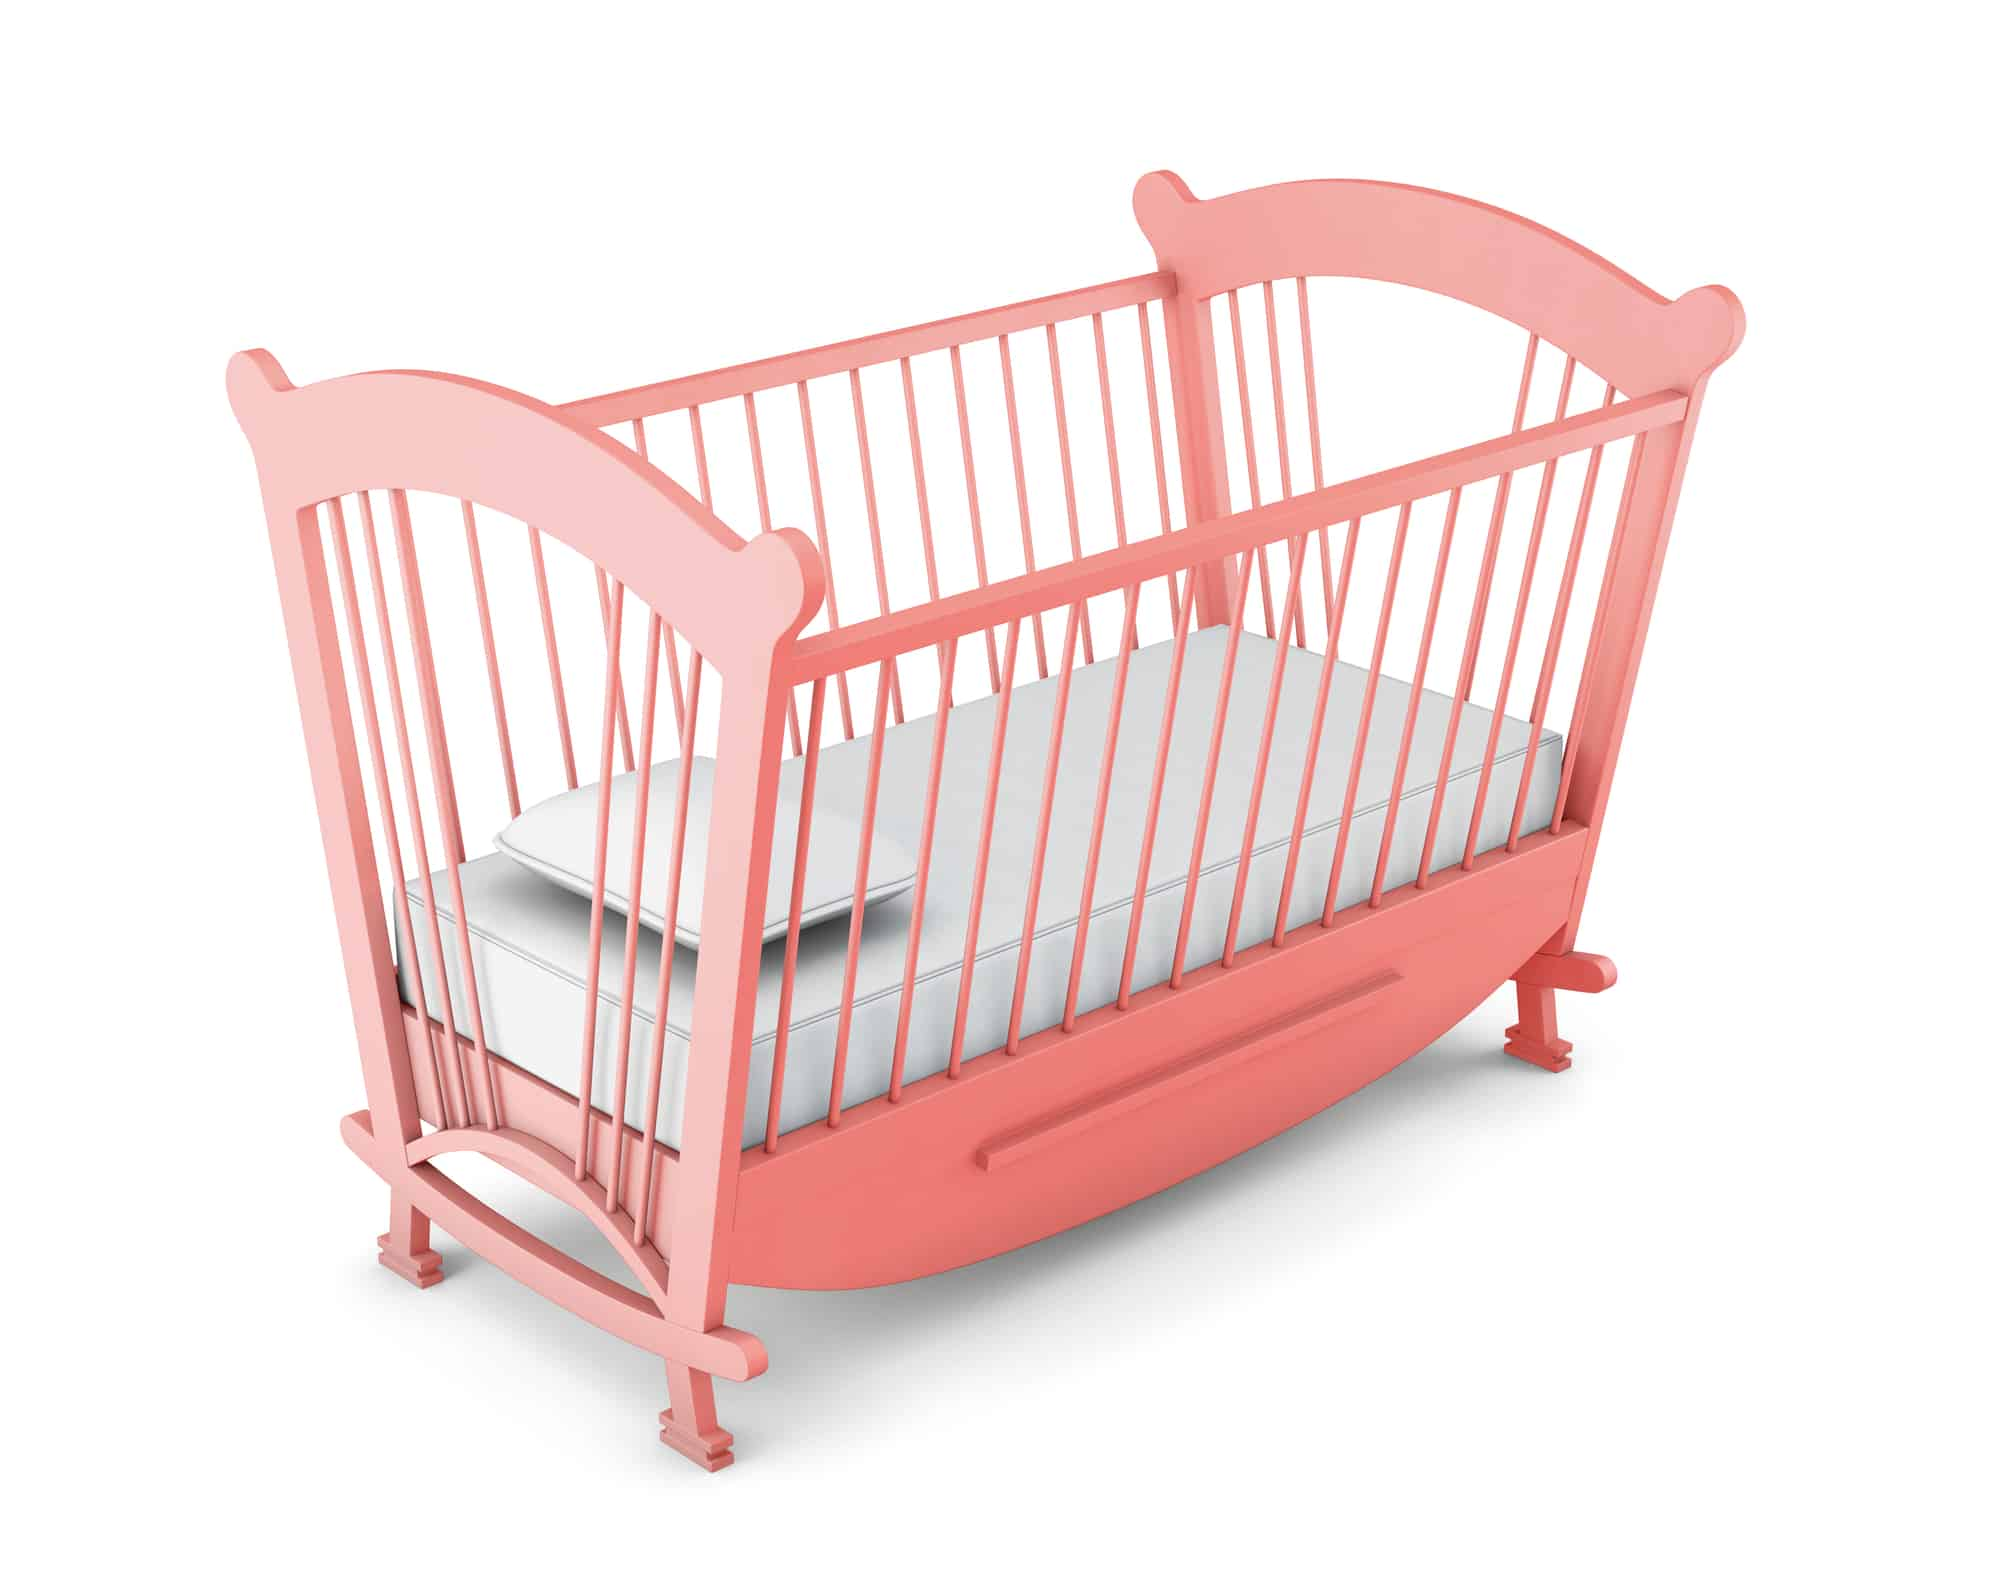 Pink cot bed isolated on white background